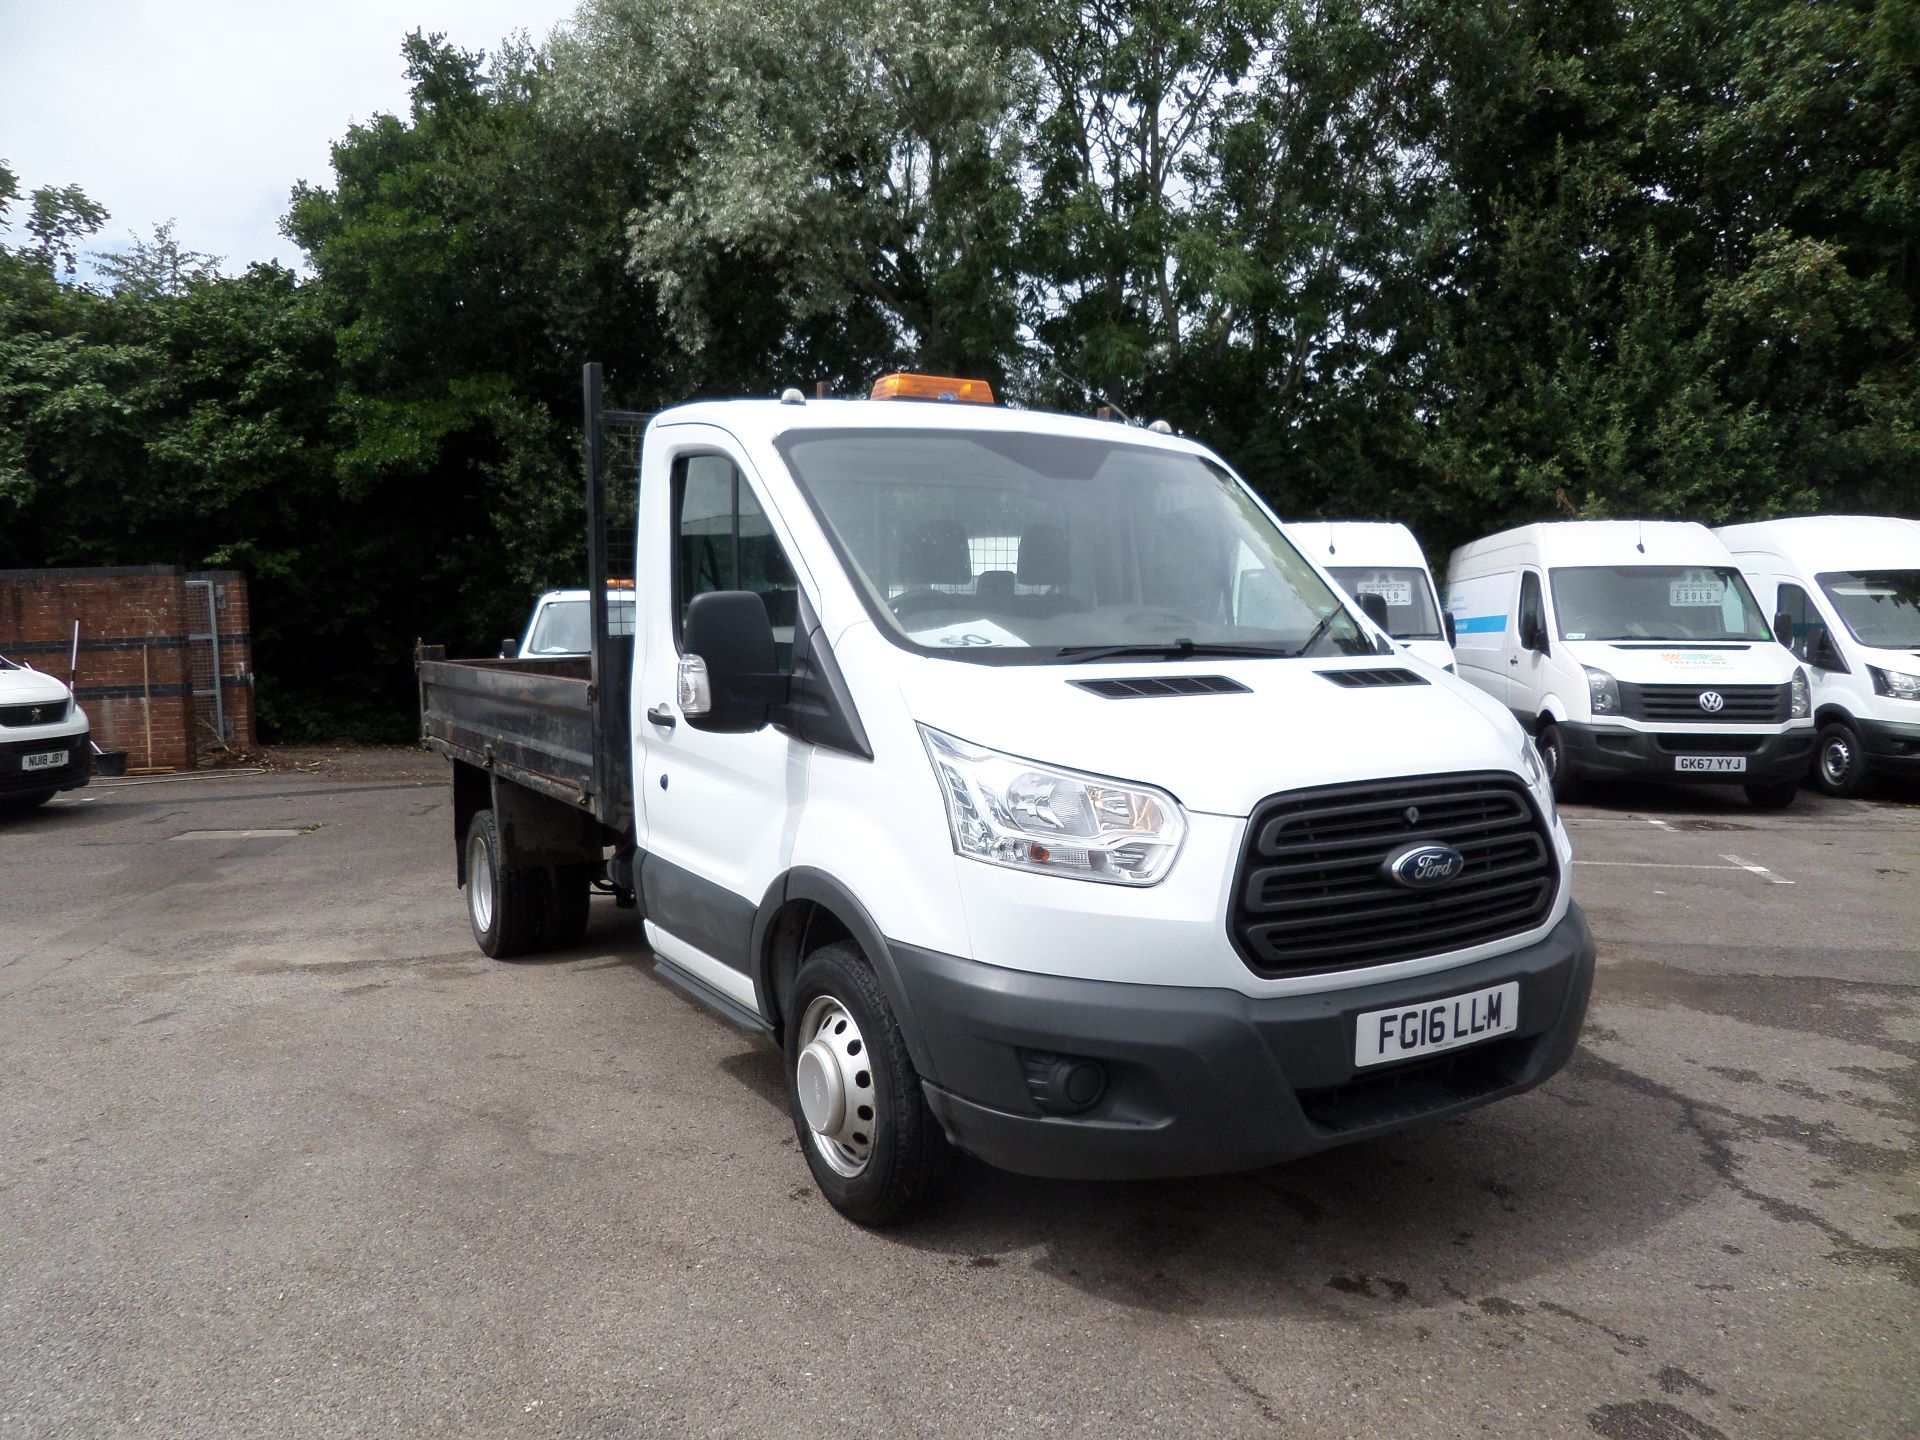 2016 Ford Transit 2.2 Tdci 125Ps Single Cab Tipper Euro 5 (FG16LLM)